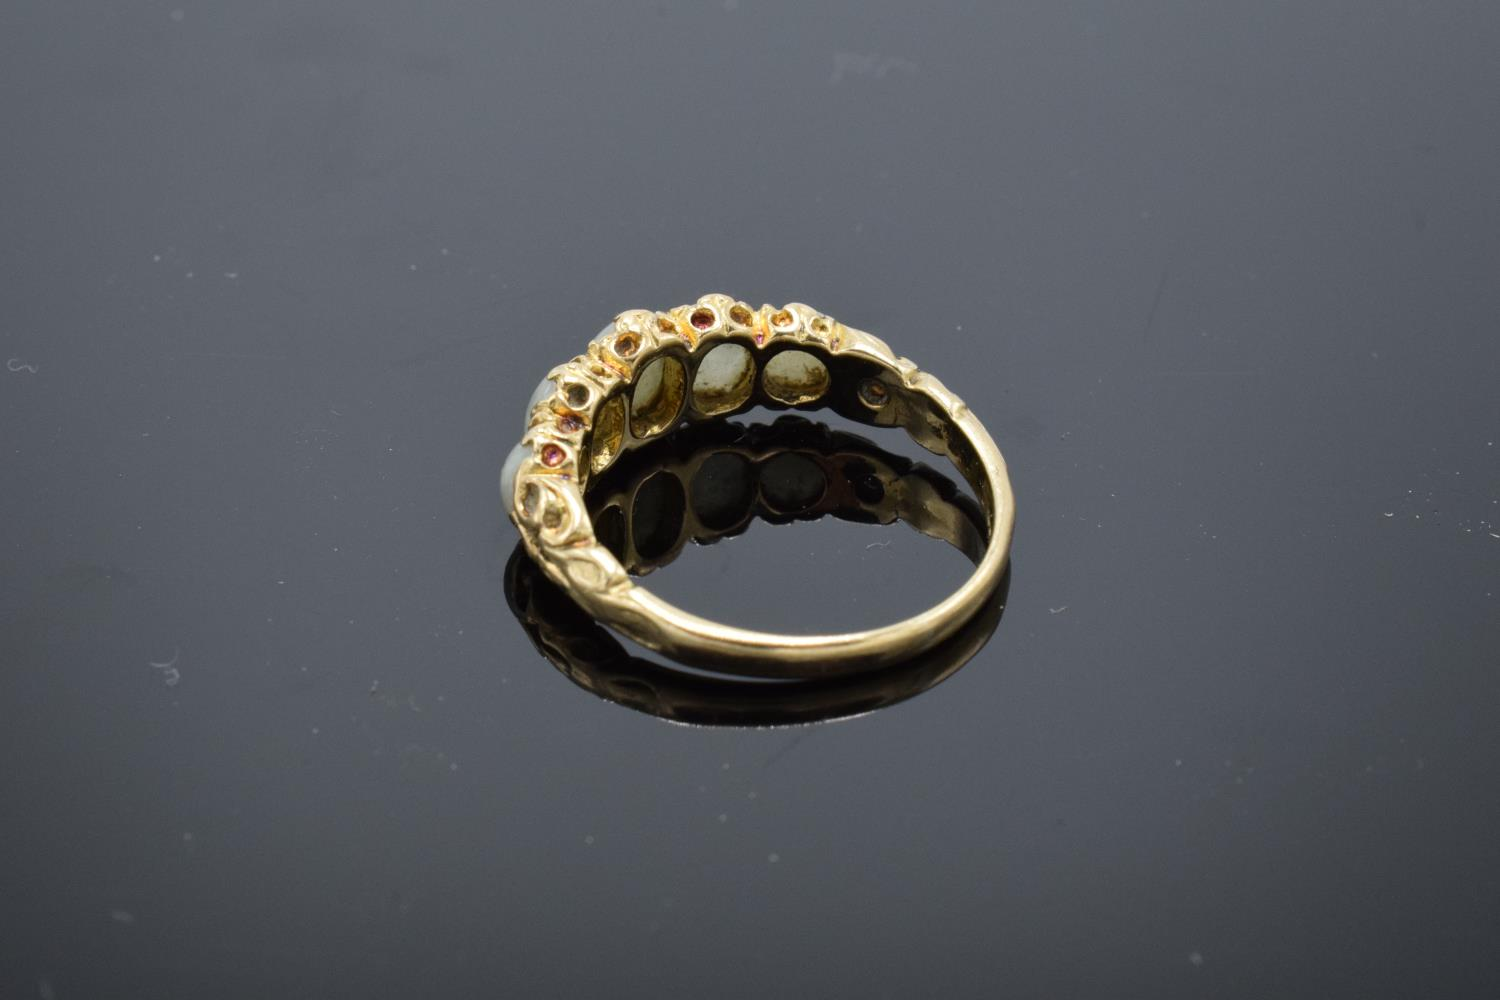 9ct gold ladies ring set with 5 opal stones, UK size N/O. Gross weight 2.6 grams. - Image 2 of 3